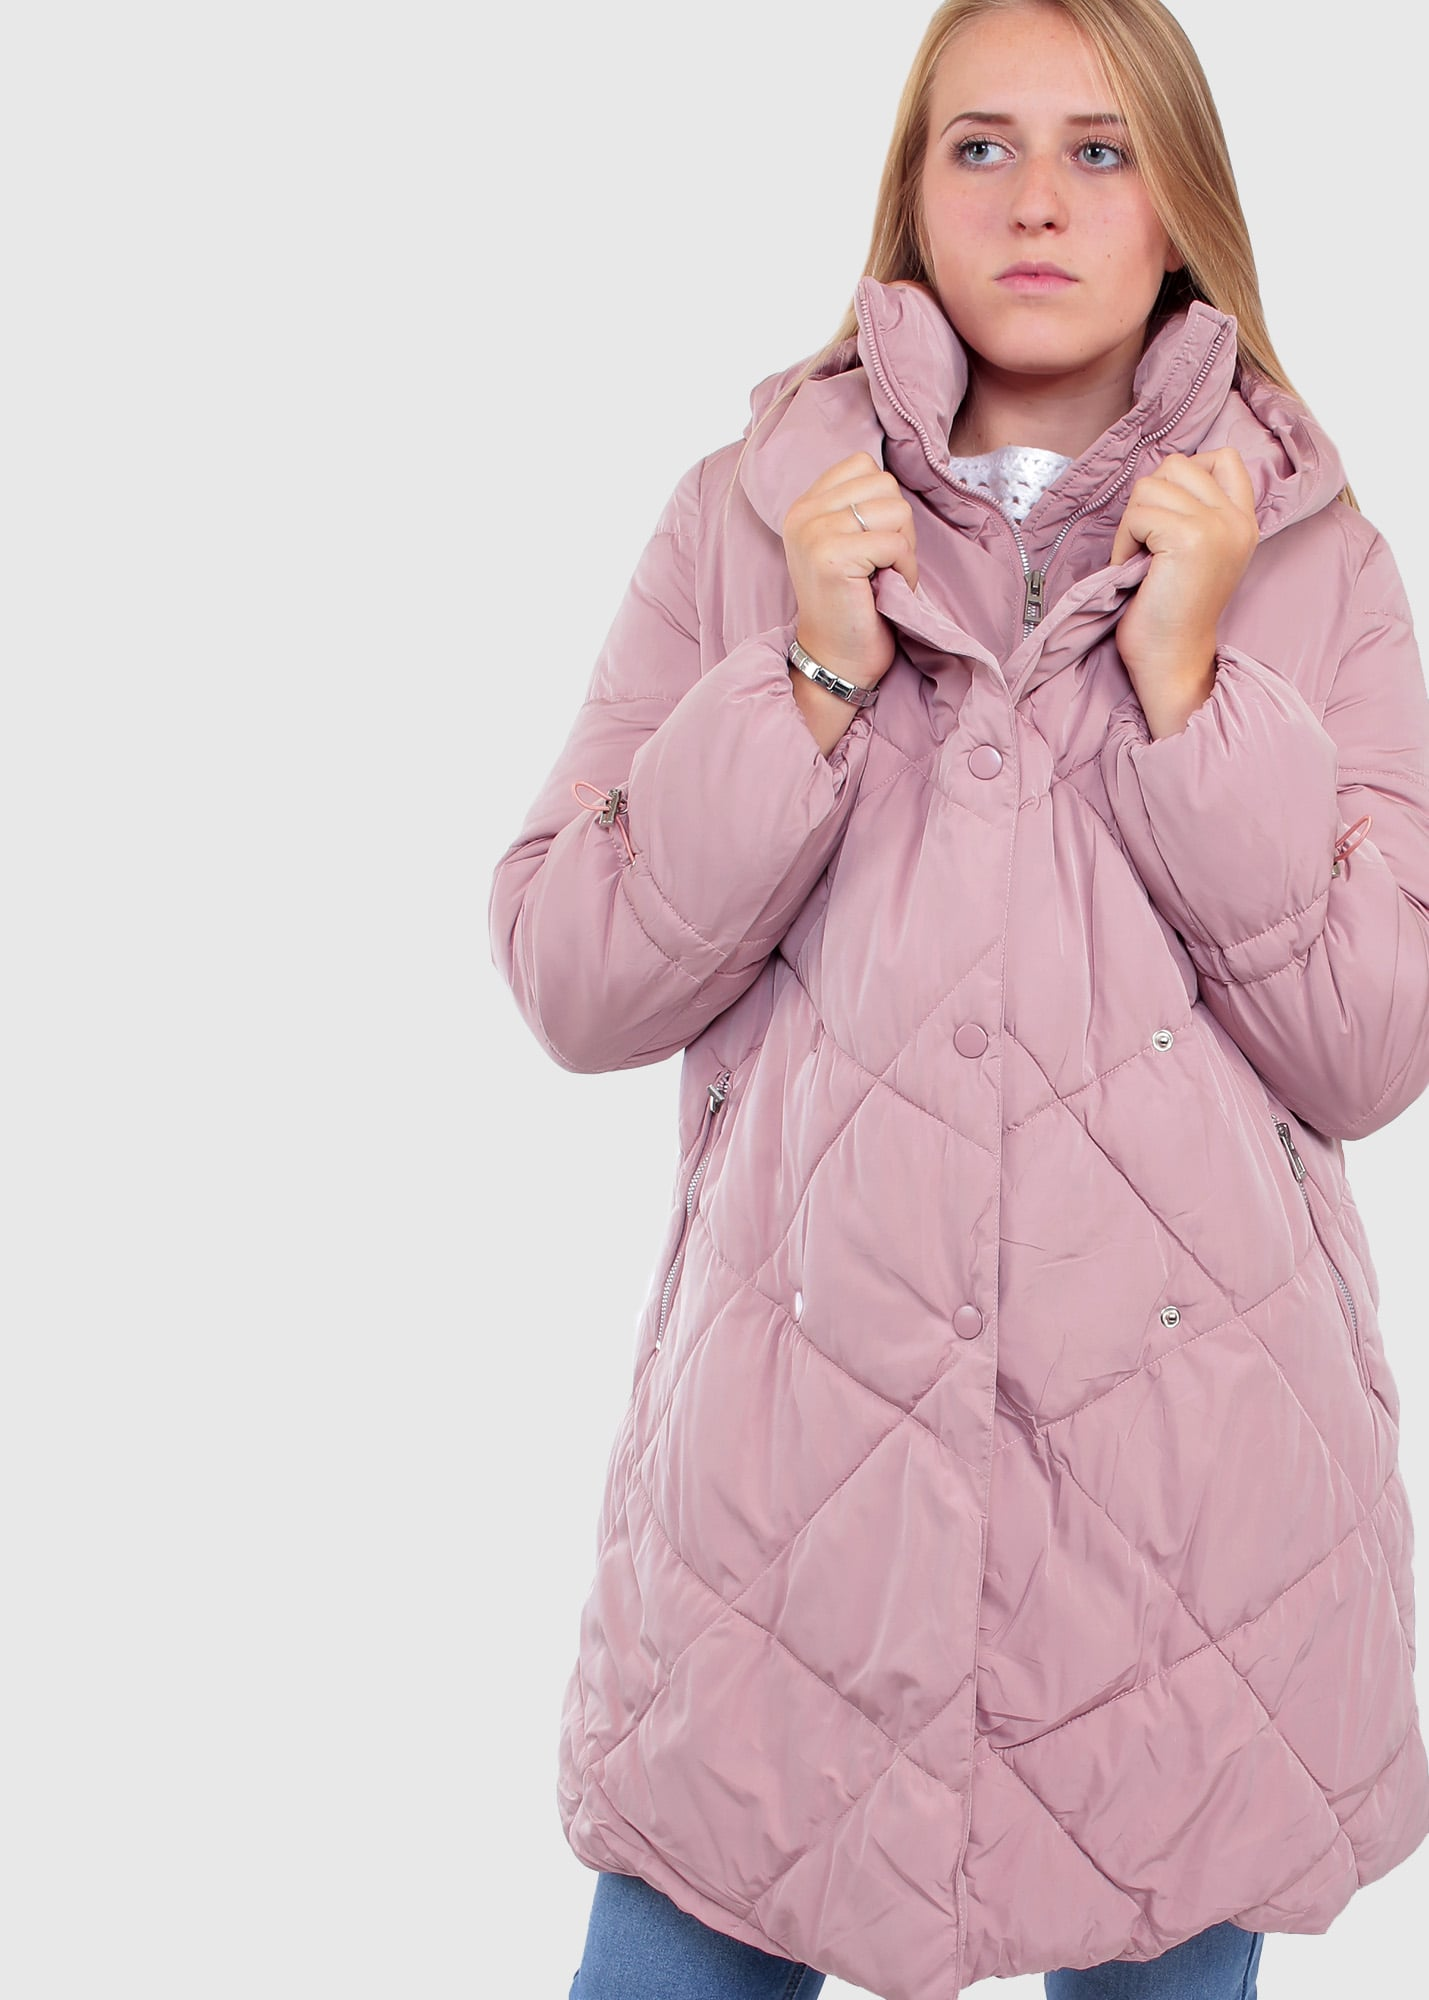 Elma pink women's jacket